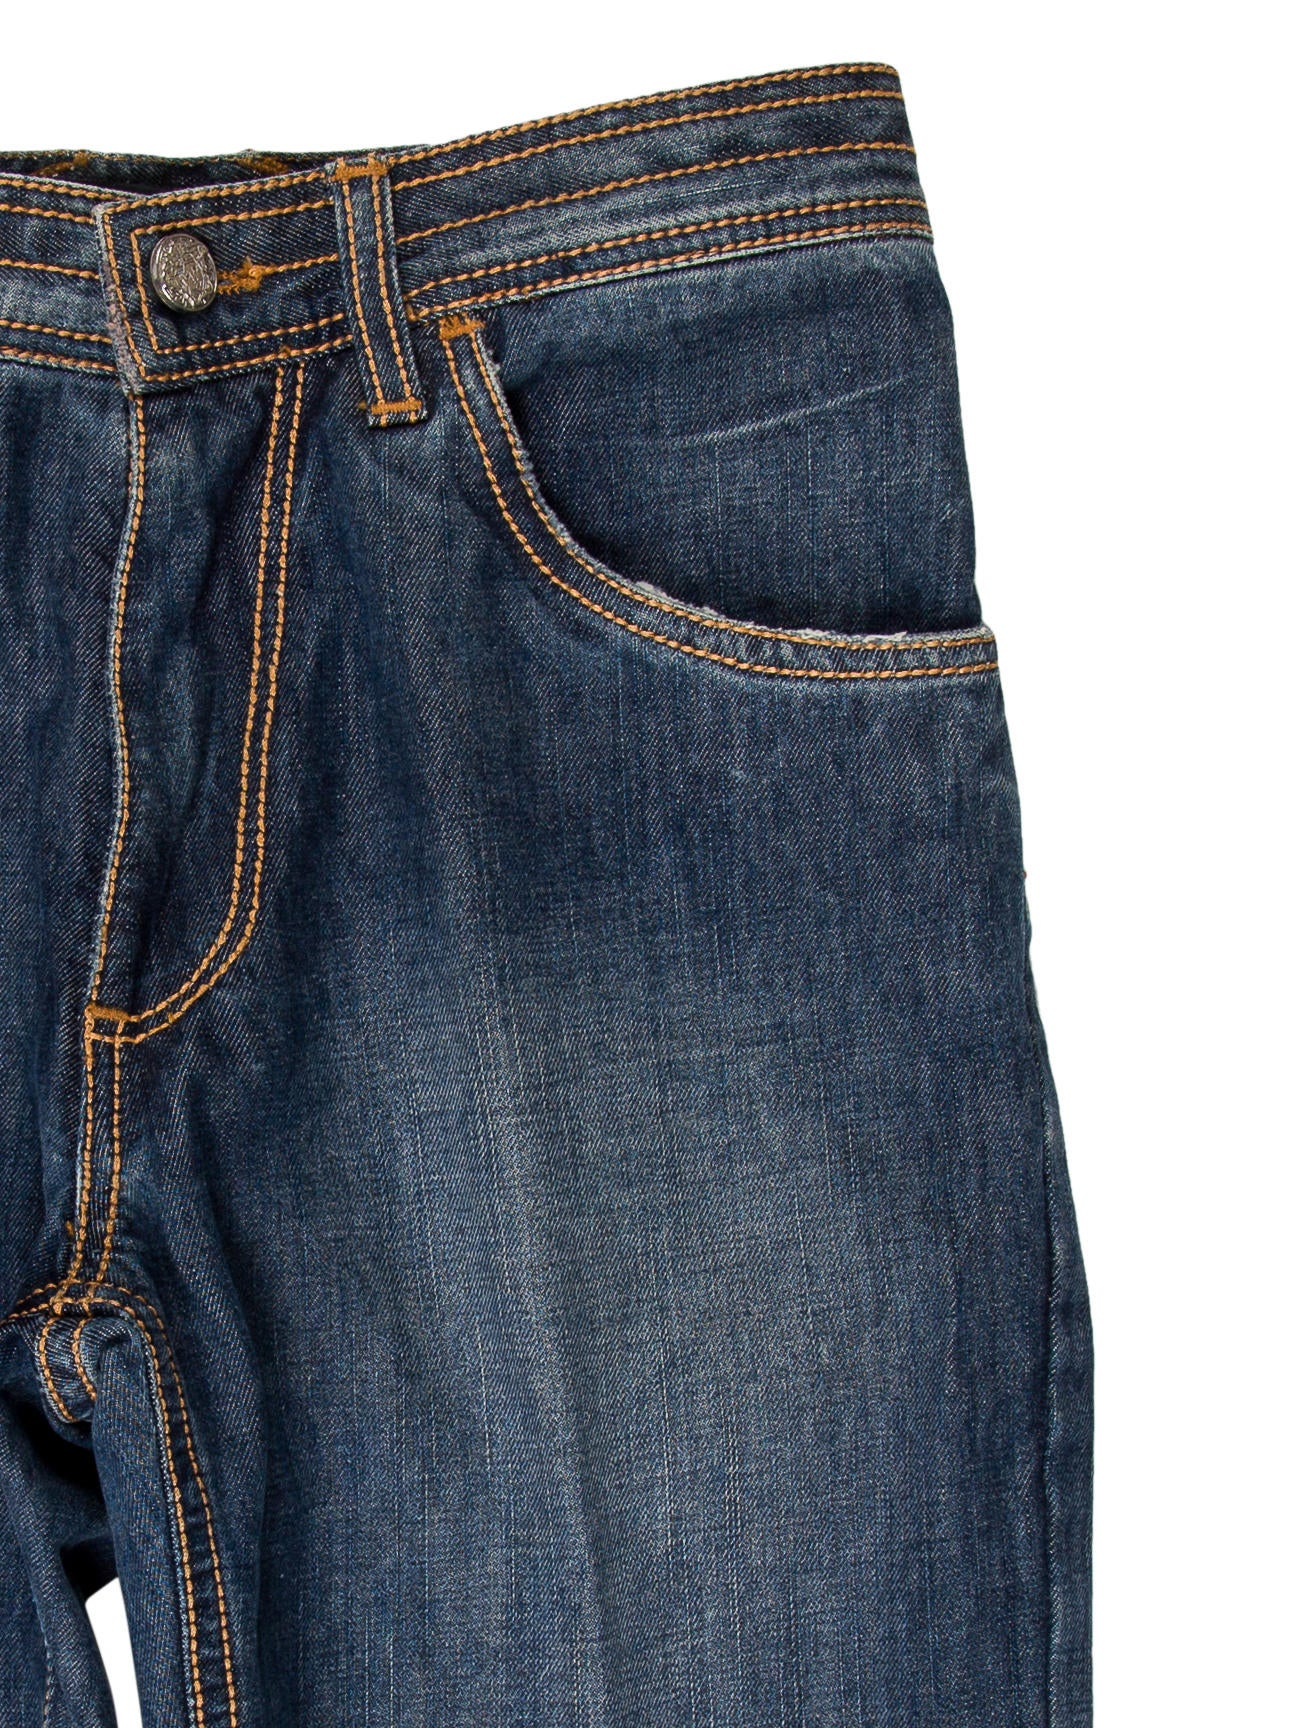 Find great deals on eBay for knee length denim shorts. Shop with confidence.